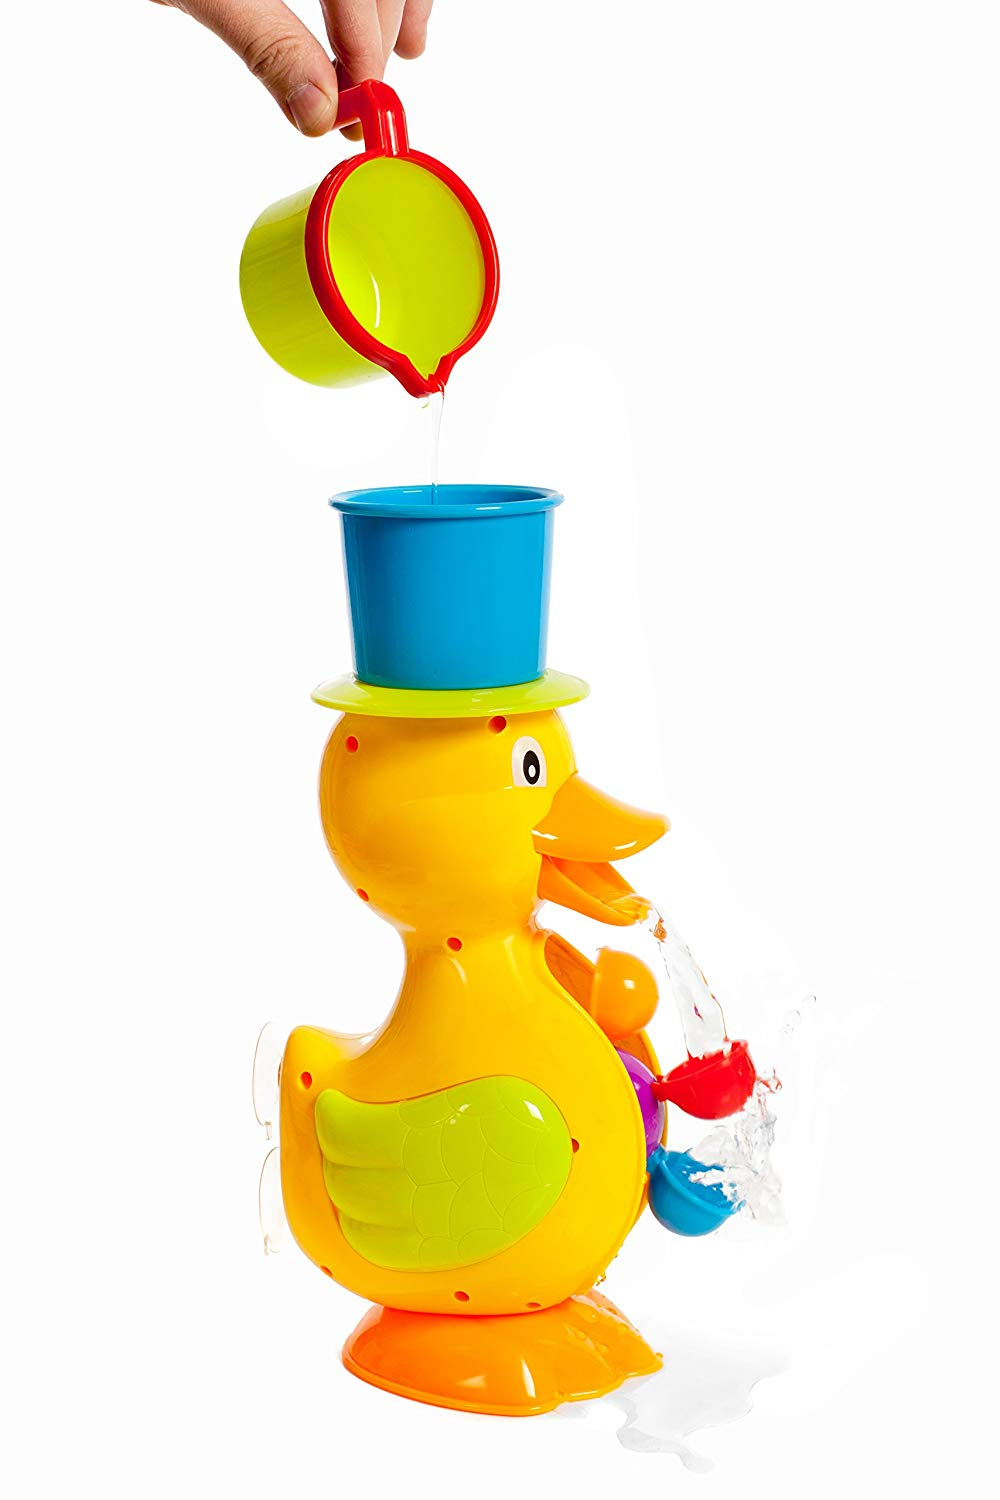 Suctioned Duck Bathtub toy with 5 cups and spinning water wheel